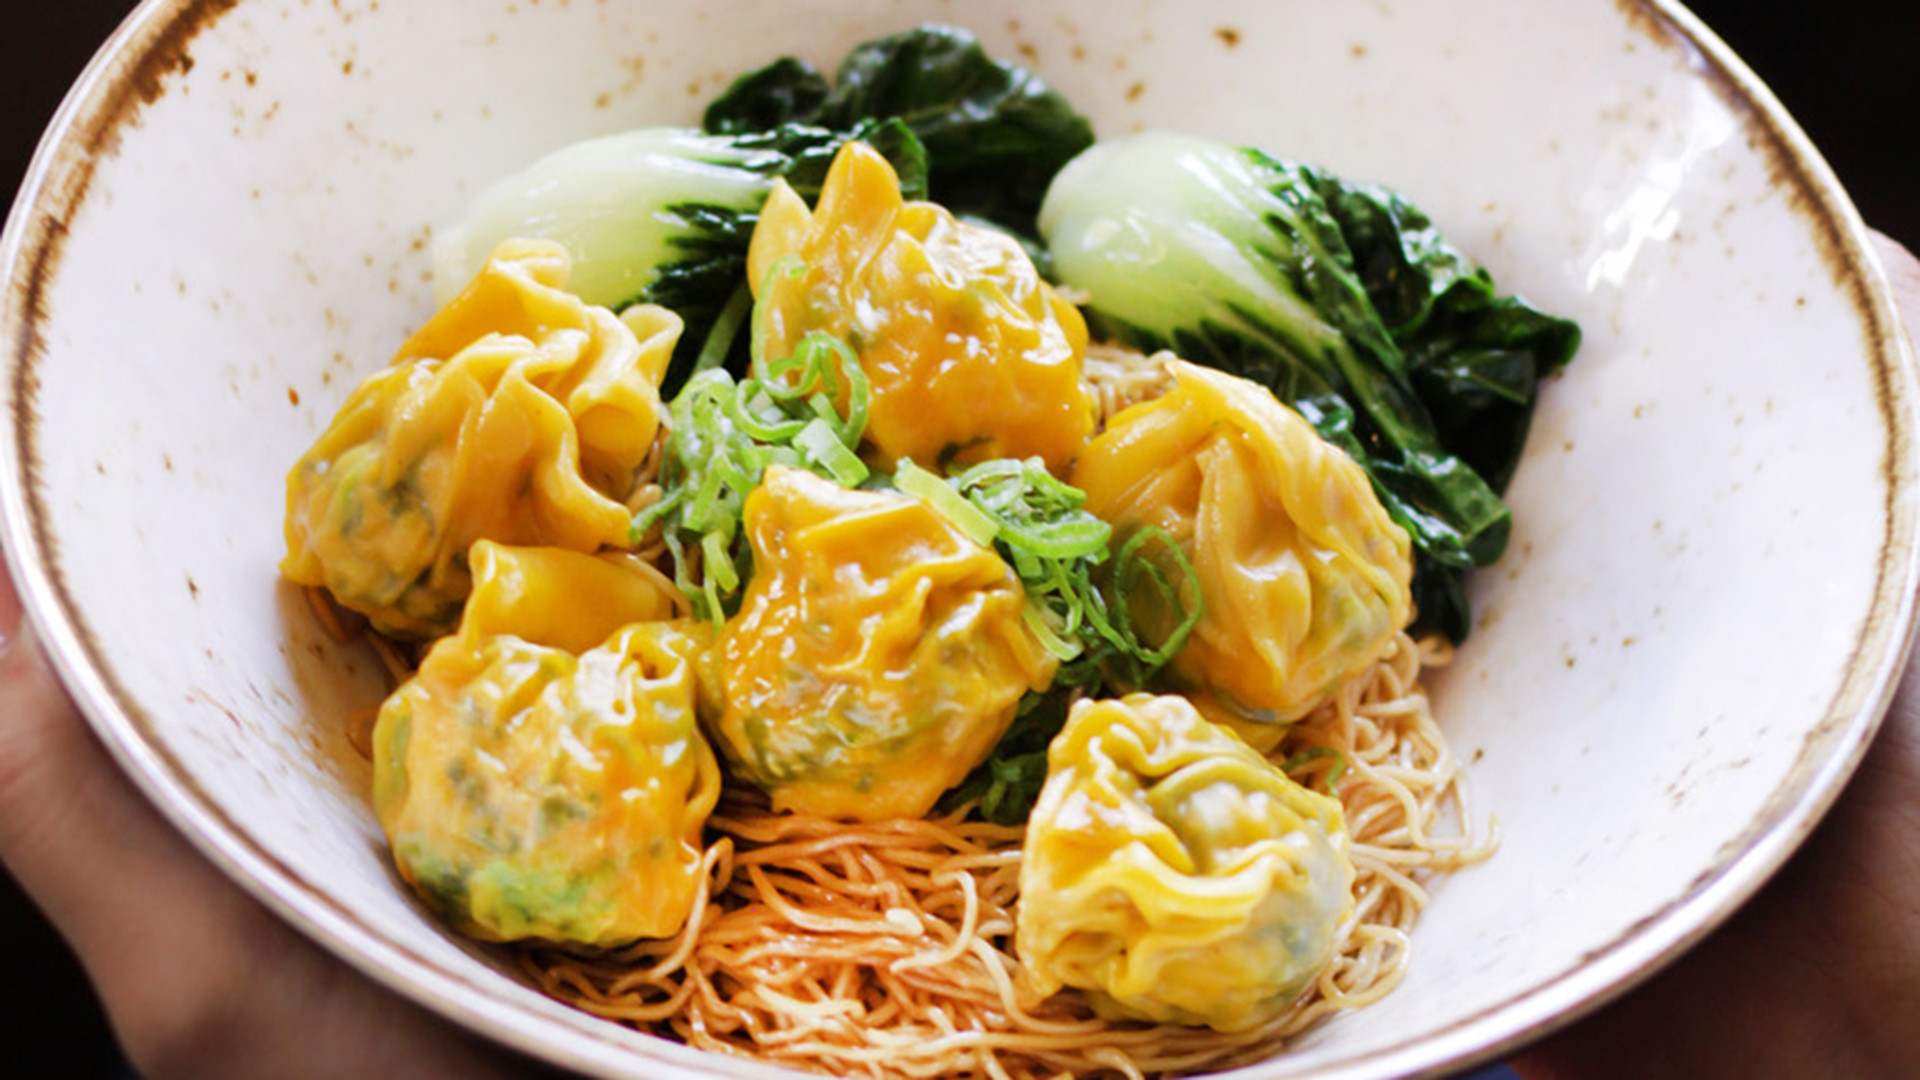 BaoziInn, London Bridge: restaurant review - wontons